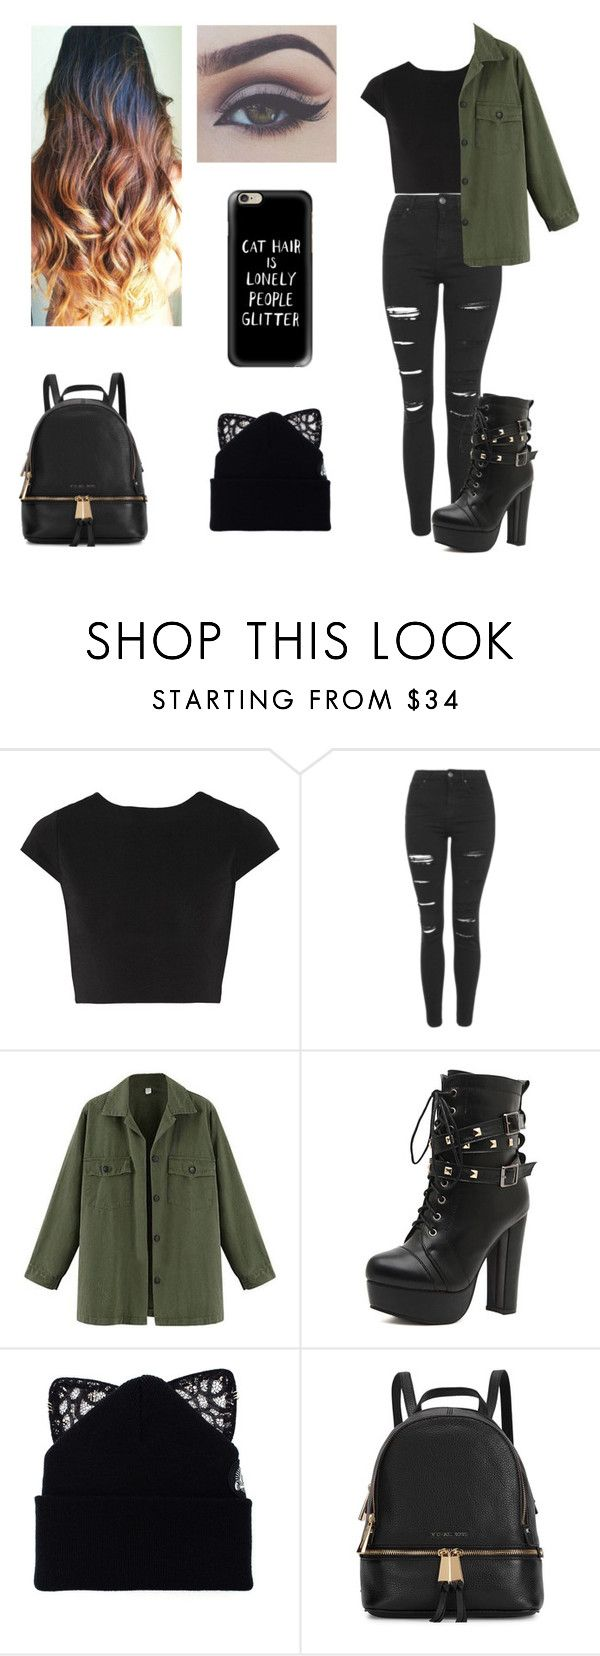 Untitled #6 by jaderaphael ❤ liked on Polyvore featuring beauty, Alice Olivia, Topshop, WithChic, Silver Spoon Attire, Michael Kors and Casetify